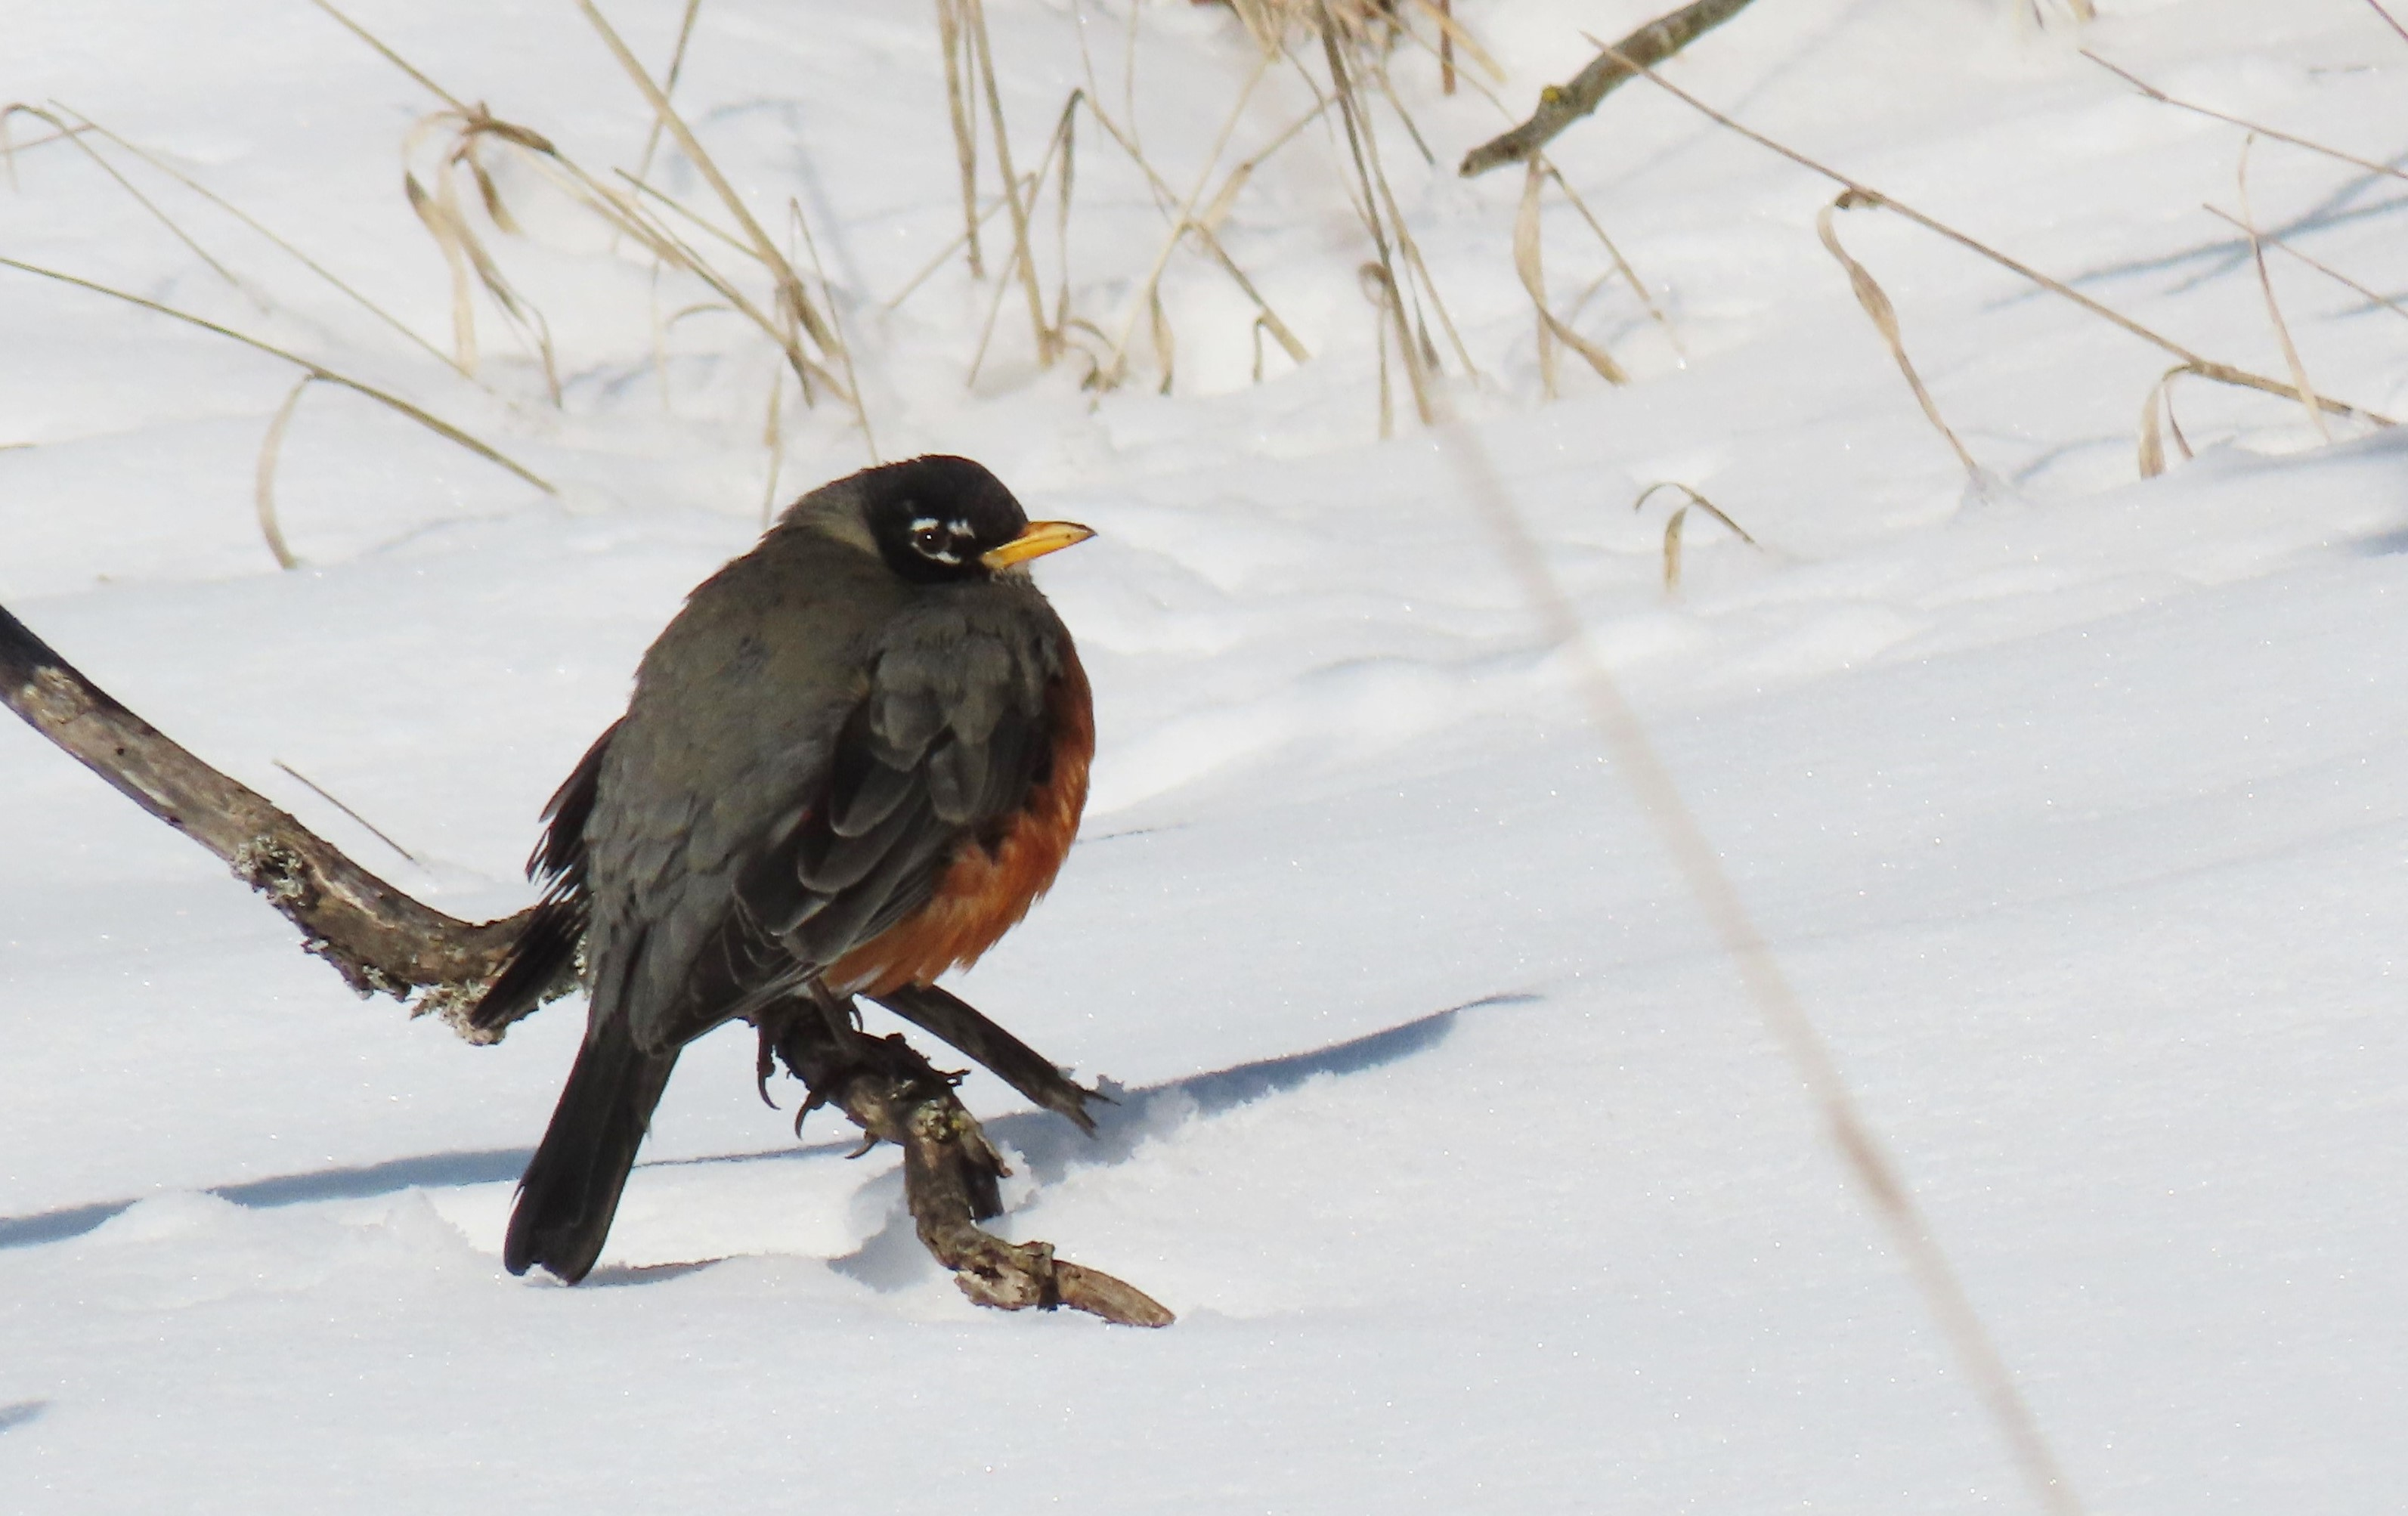 A robin perched on branch that protrudes from the snow